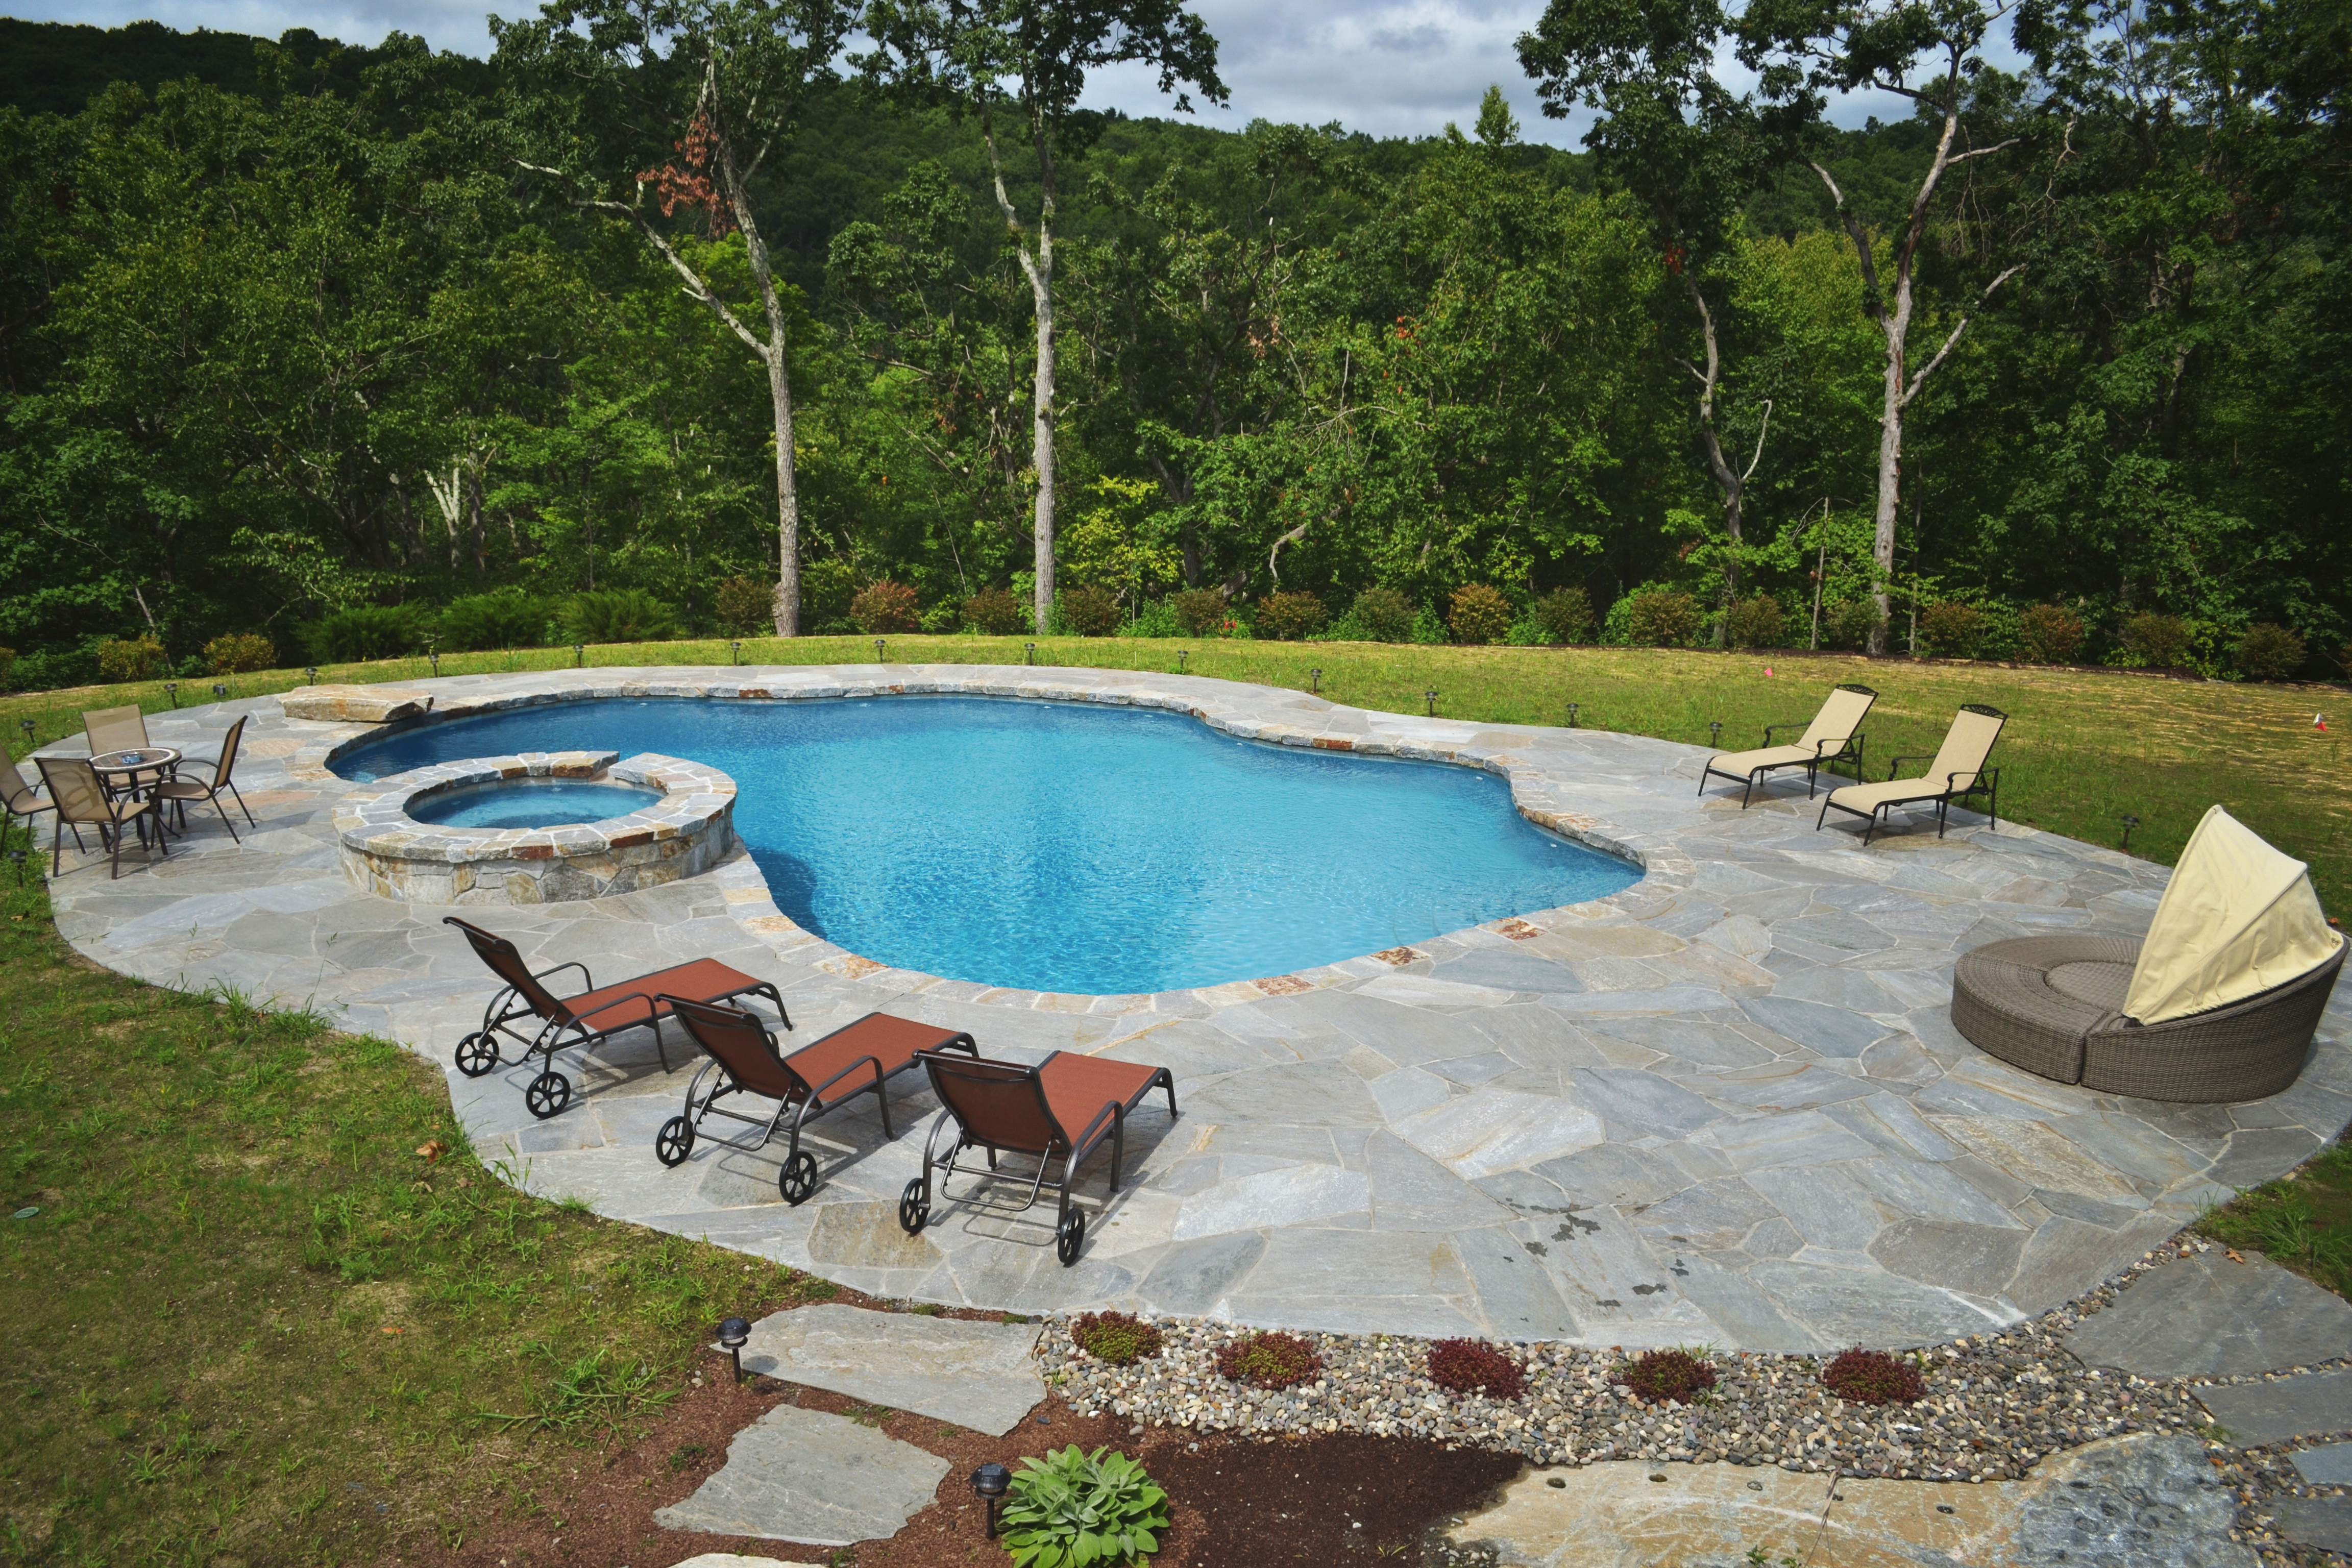 Pool with raised spillover spa